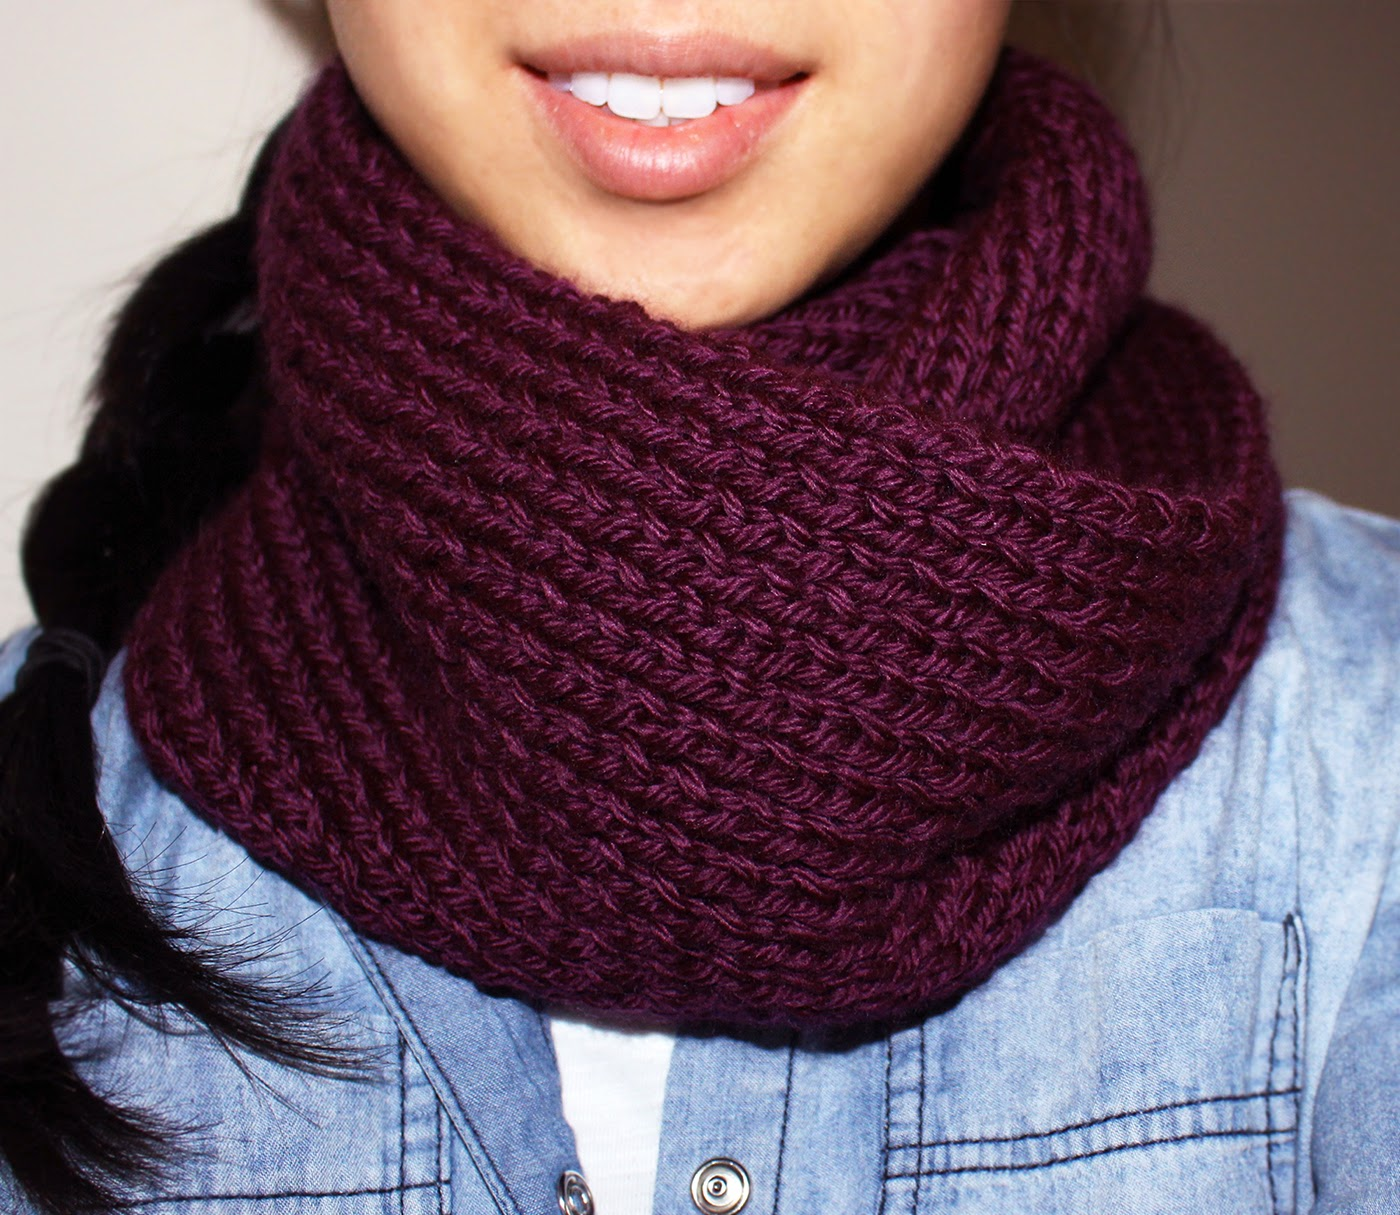 Knitting Patterns For Scarfs : Purllin: Acai Infinity Circle Scarf [free knitting pattern]